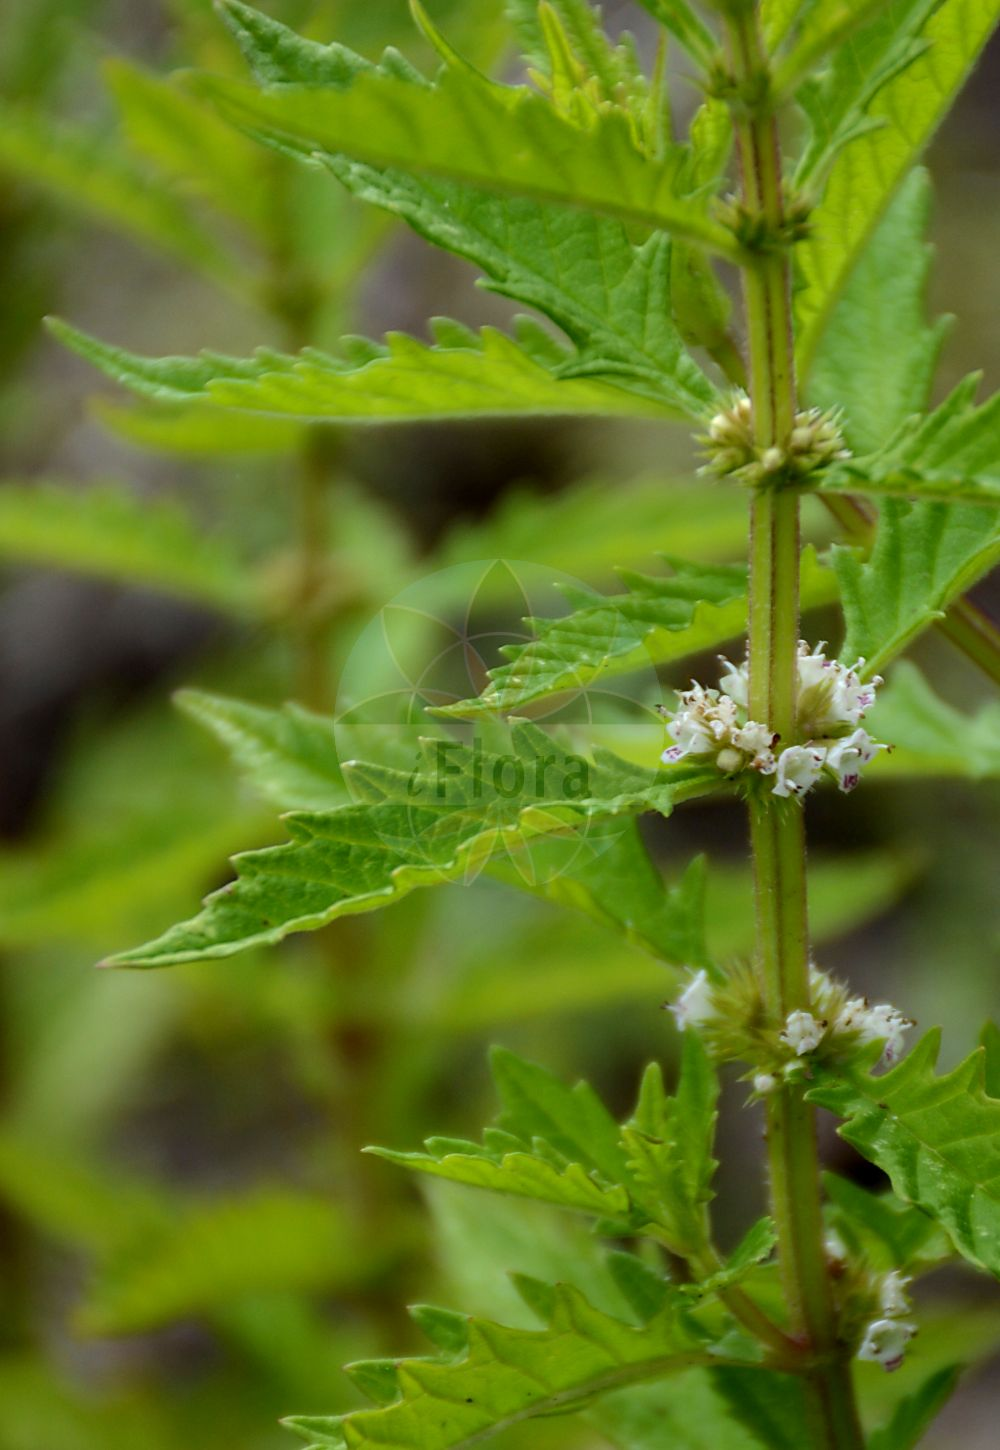 Foto von Lycopus europaeus (Gewoehnlicher Ufer-Wolfstrapp - Gipsywort). Das Foto wurde in Berlin, Deutschland aufgenommen. ---- Photo of Lycopus europaeus (Gewoehnlicher Ufer-Wolfstrapp - Gipsywort).The picture was taken in Berlin, Germany.(Lycopus europaeus,Gewoehnlicher Ufer-Wolfstrapp,Gipsywort,Lycopus alboroseus,Lycopus albus,Lycopus aquaticus,Lycopus decrescens,Lycopus intermedius,Lycopus laciniatus,Lycopus menthifolius,Lycopus mollis,Lycopus niger,Lycopus palustris,Lycopus riparius,Lycopus solanifolius,Lycopus souliei,Lycopus vulgaris,Ganz Gewoehnlicher Wolfsfuss,Gewoehnlicher Wolfsfuss,Ufer-Wolfstrapp,Gypsywort,European Bugleweed,Waterhorehound,Lycopus,Wolfstrapp,Waterhorehound,Lamiaceae,Lippenbluetengewaechse;Lippenbluetler,Nettle family)